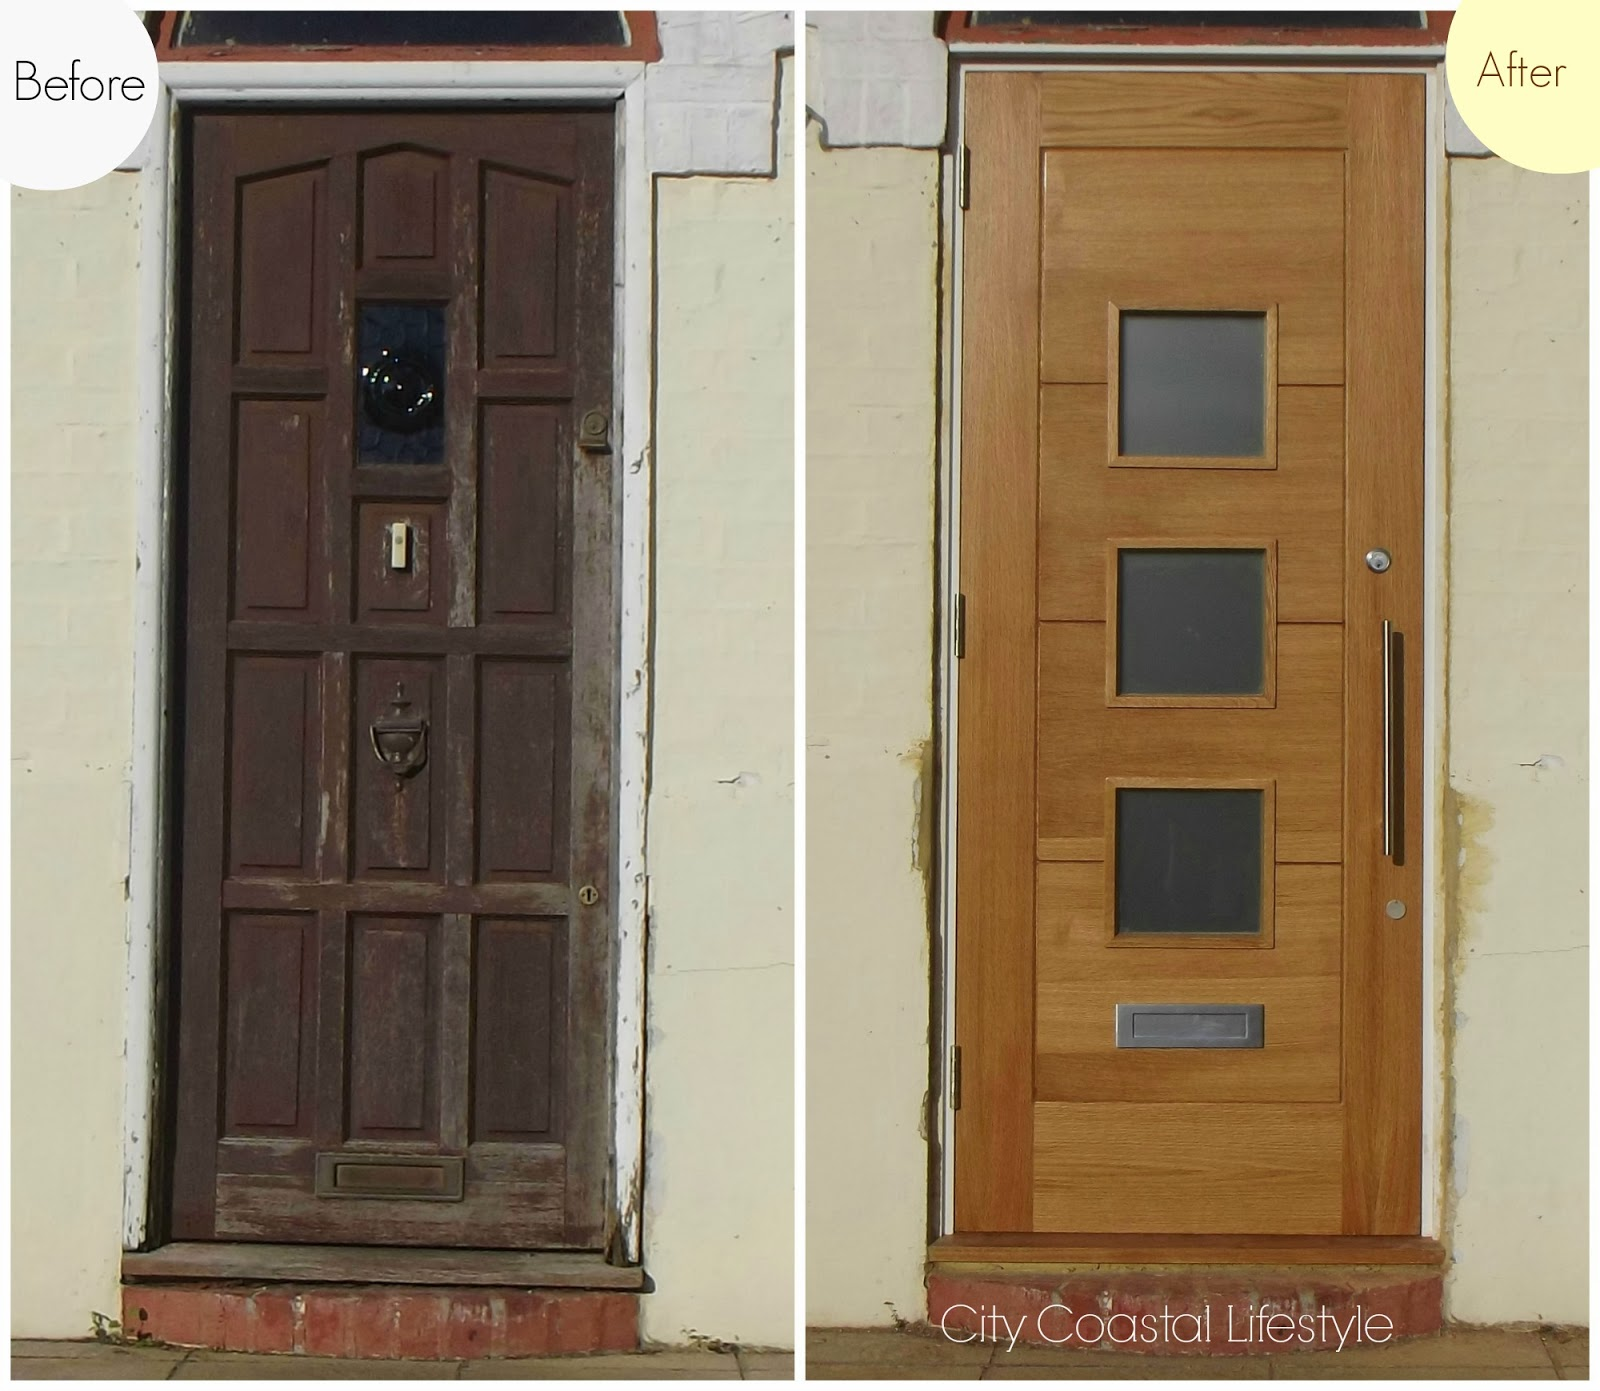 Our Door Has Had Several Coats Of Yacht Varnish Lied Too To Ward Off The Sea Salt Laden Air